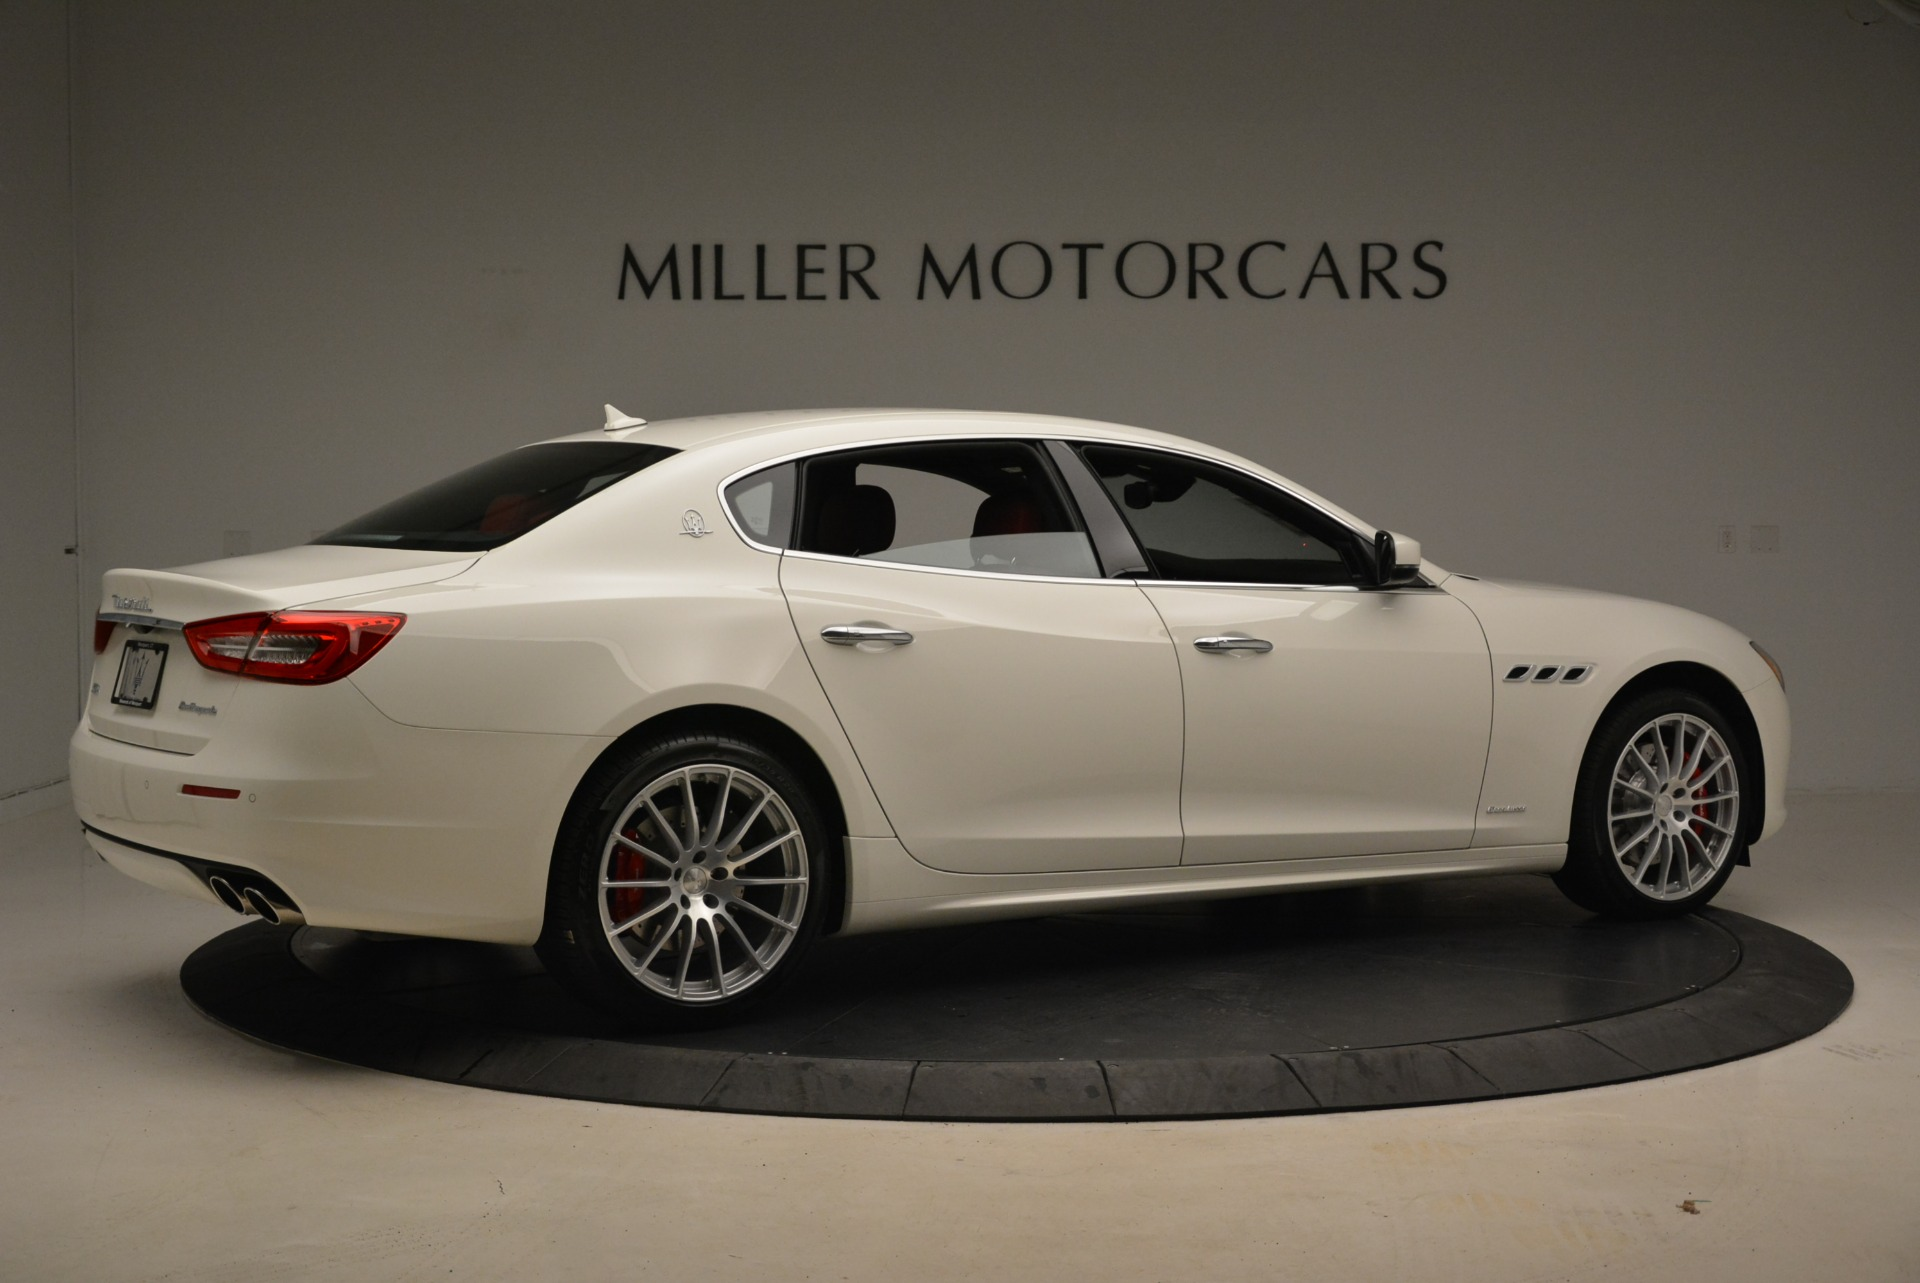 New 2018 Maserati Quattroporte S Q4 GranLusso For Sale In Westport, CT 2085_p11